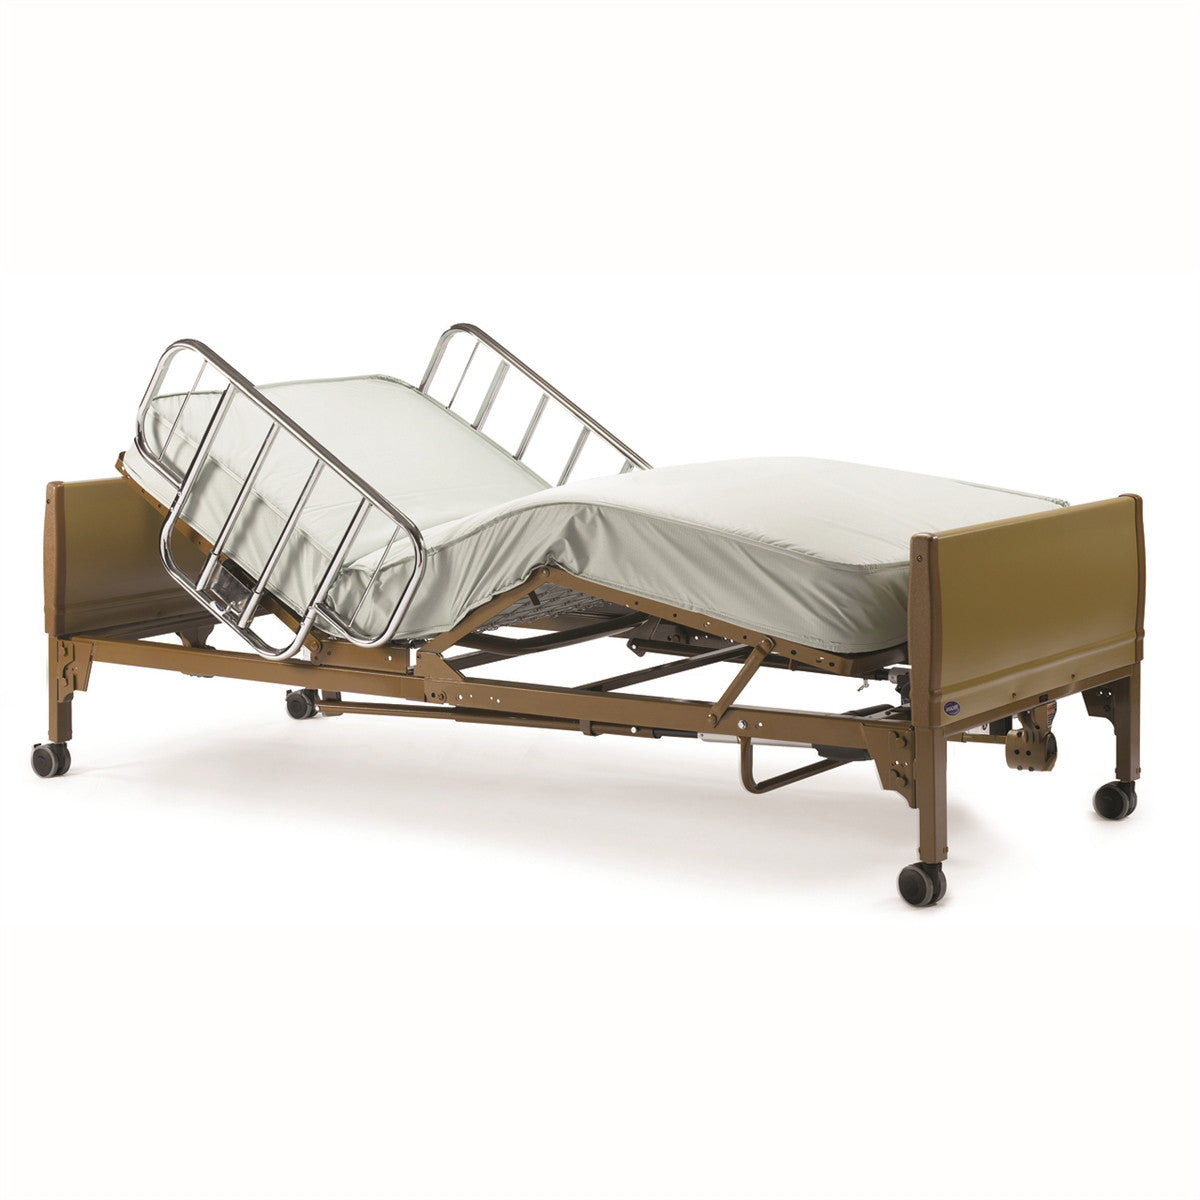 hospital bed rental - standard size - reliable medical supply